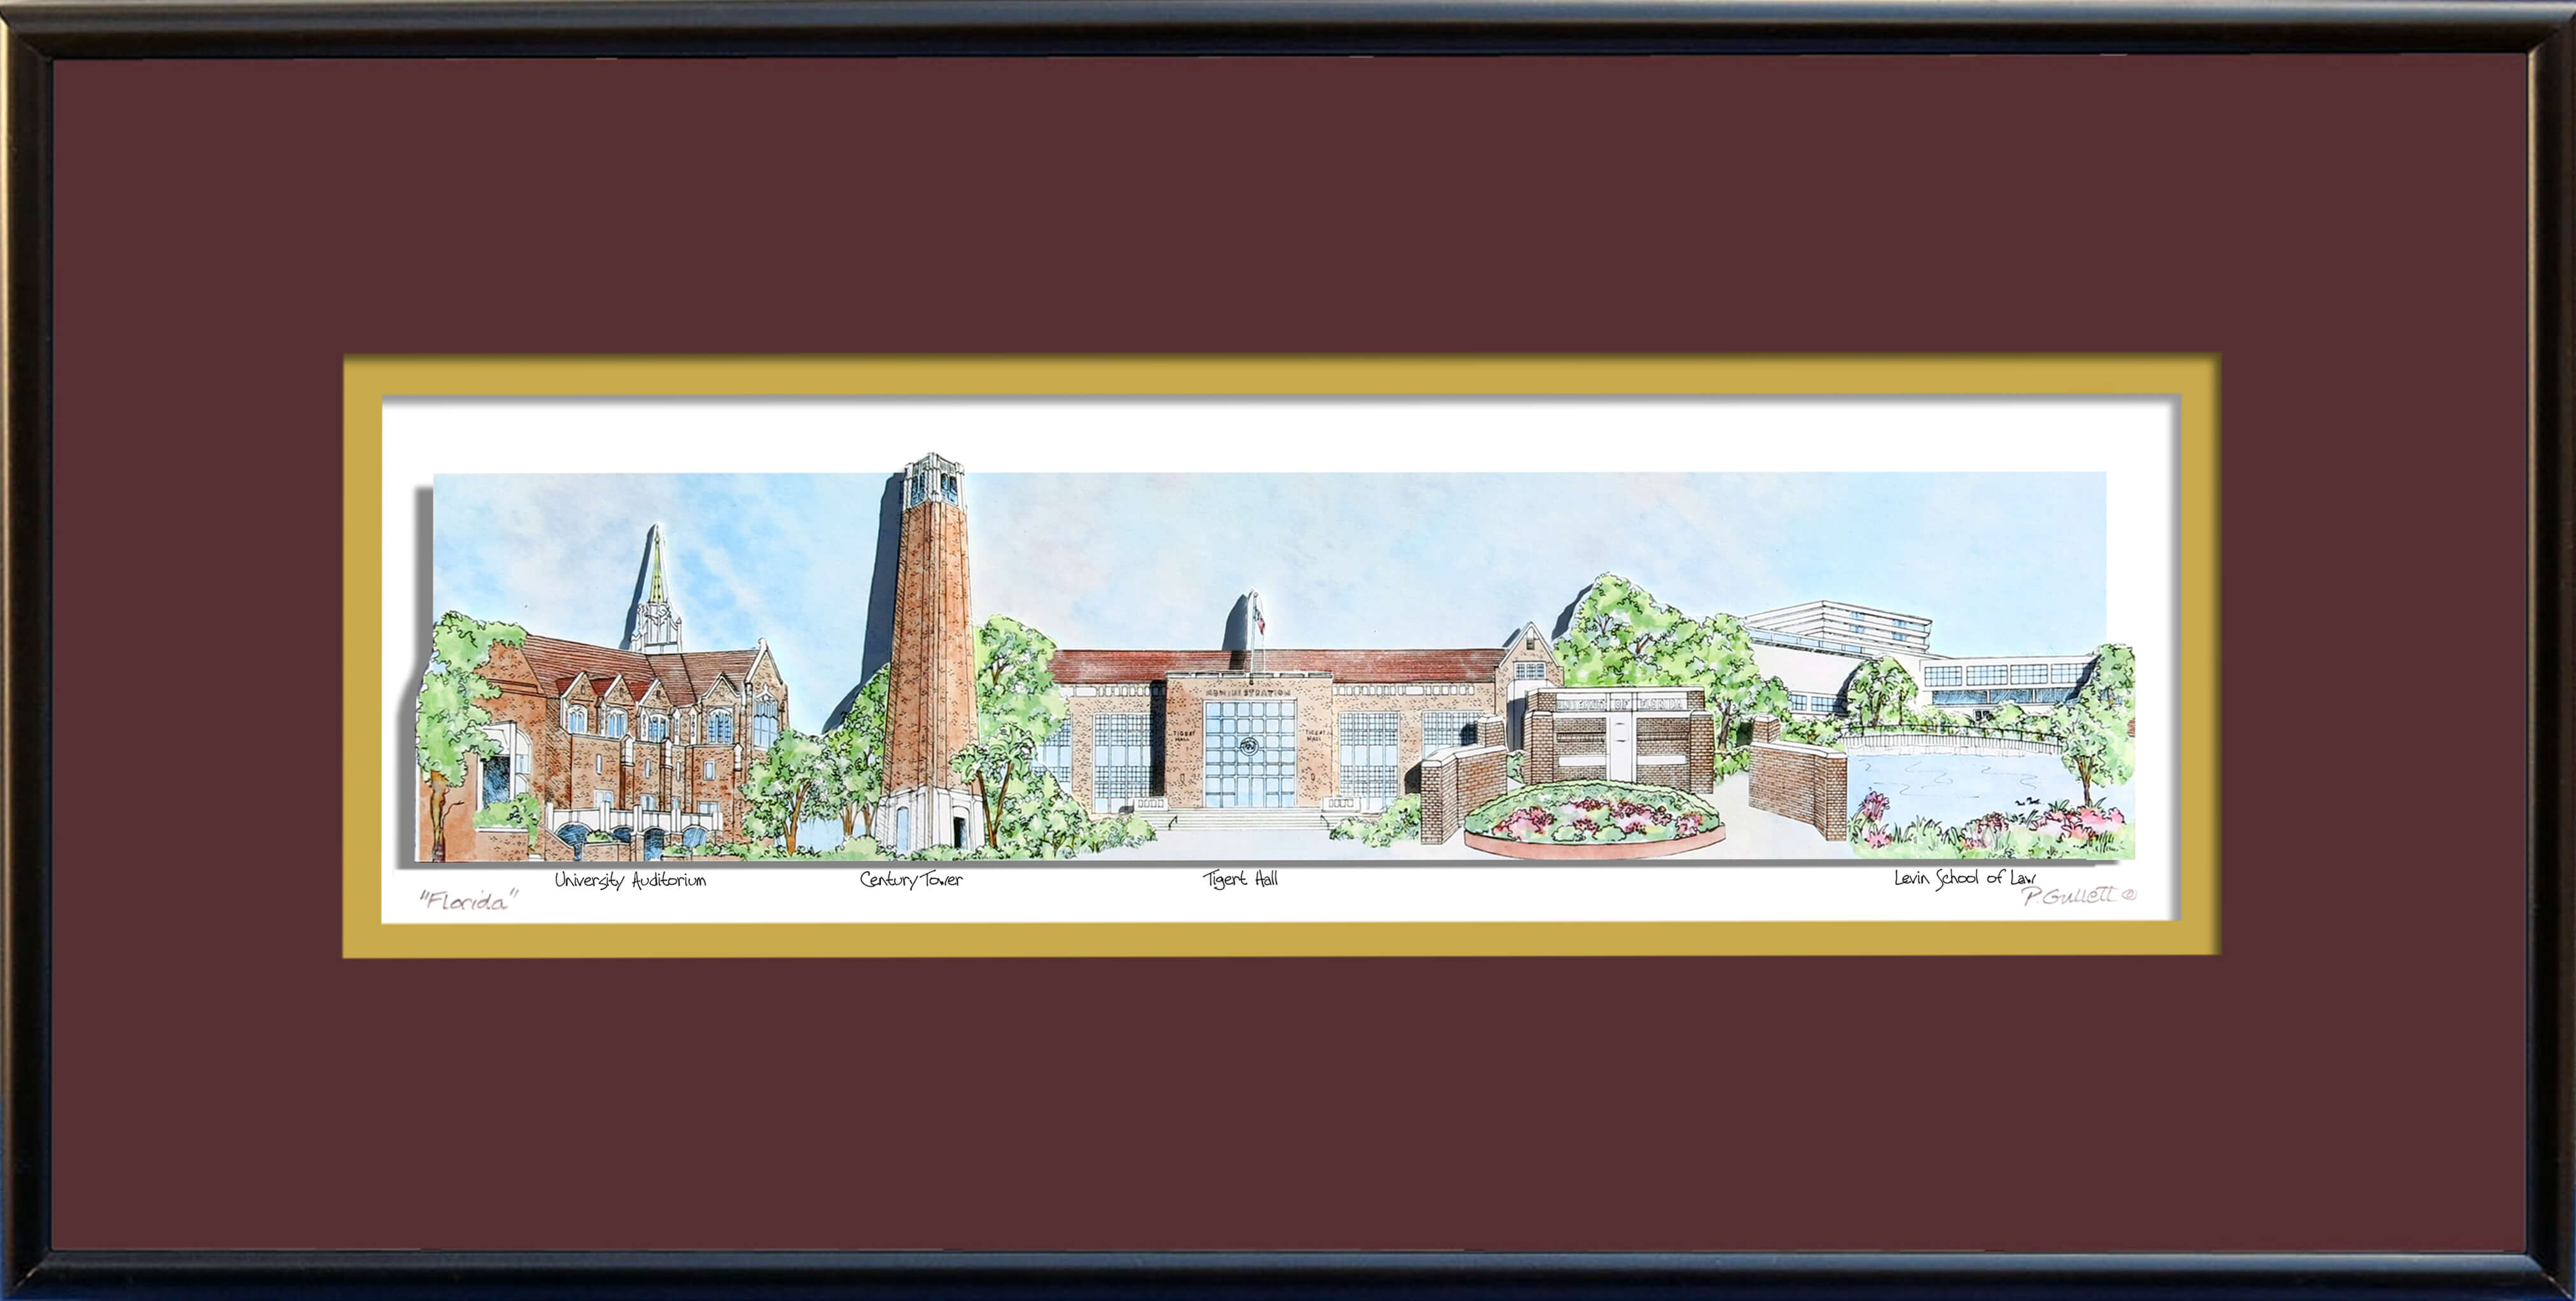 U of FL FRAME